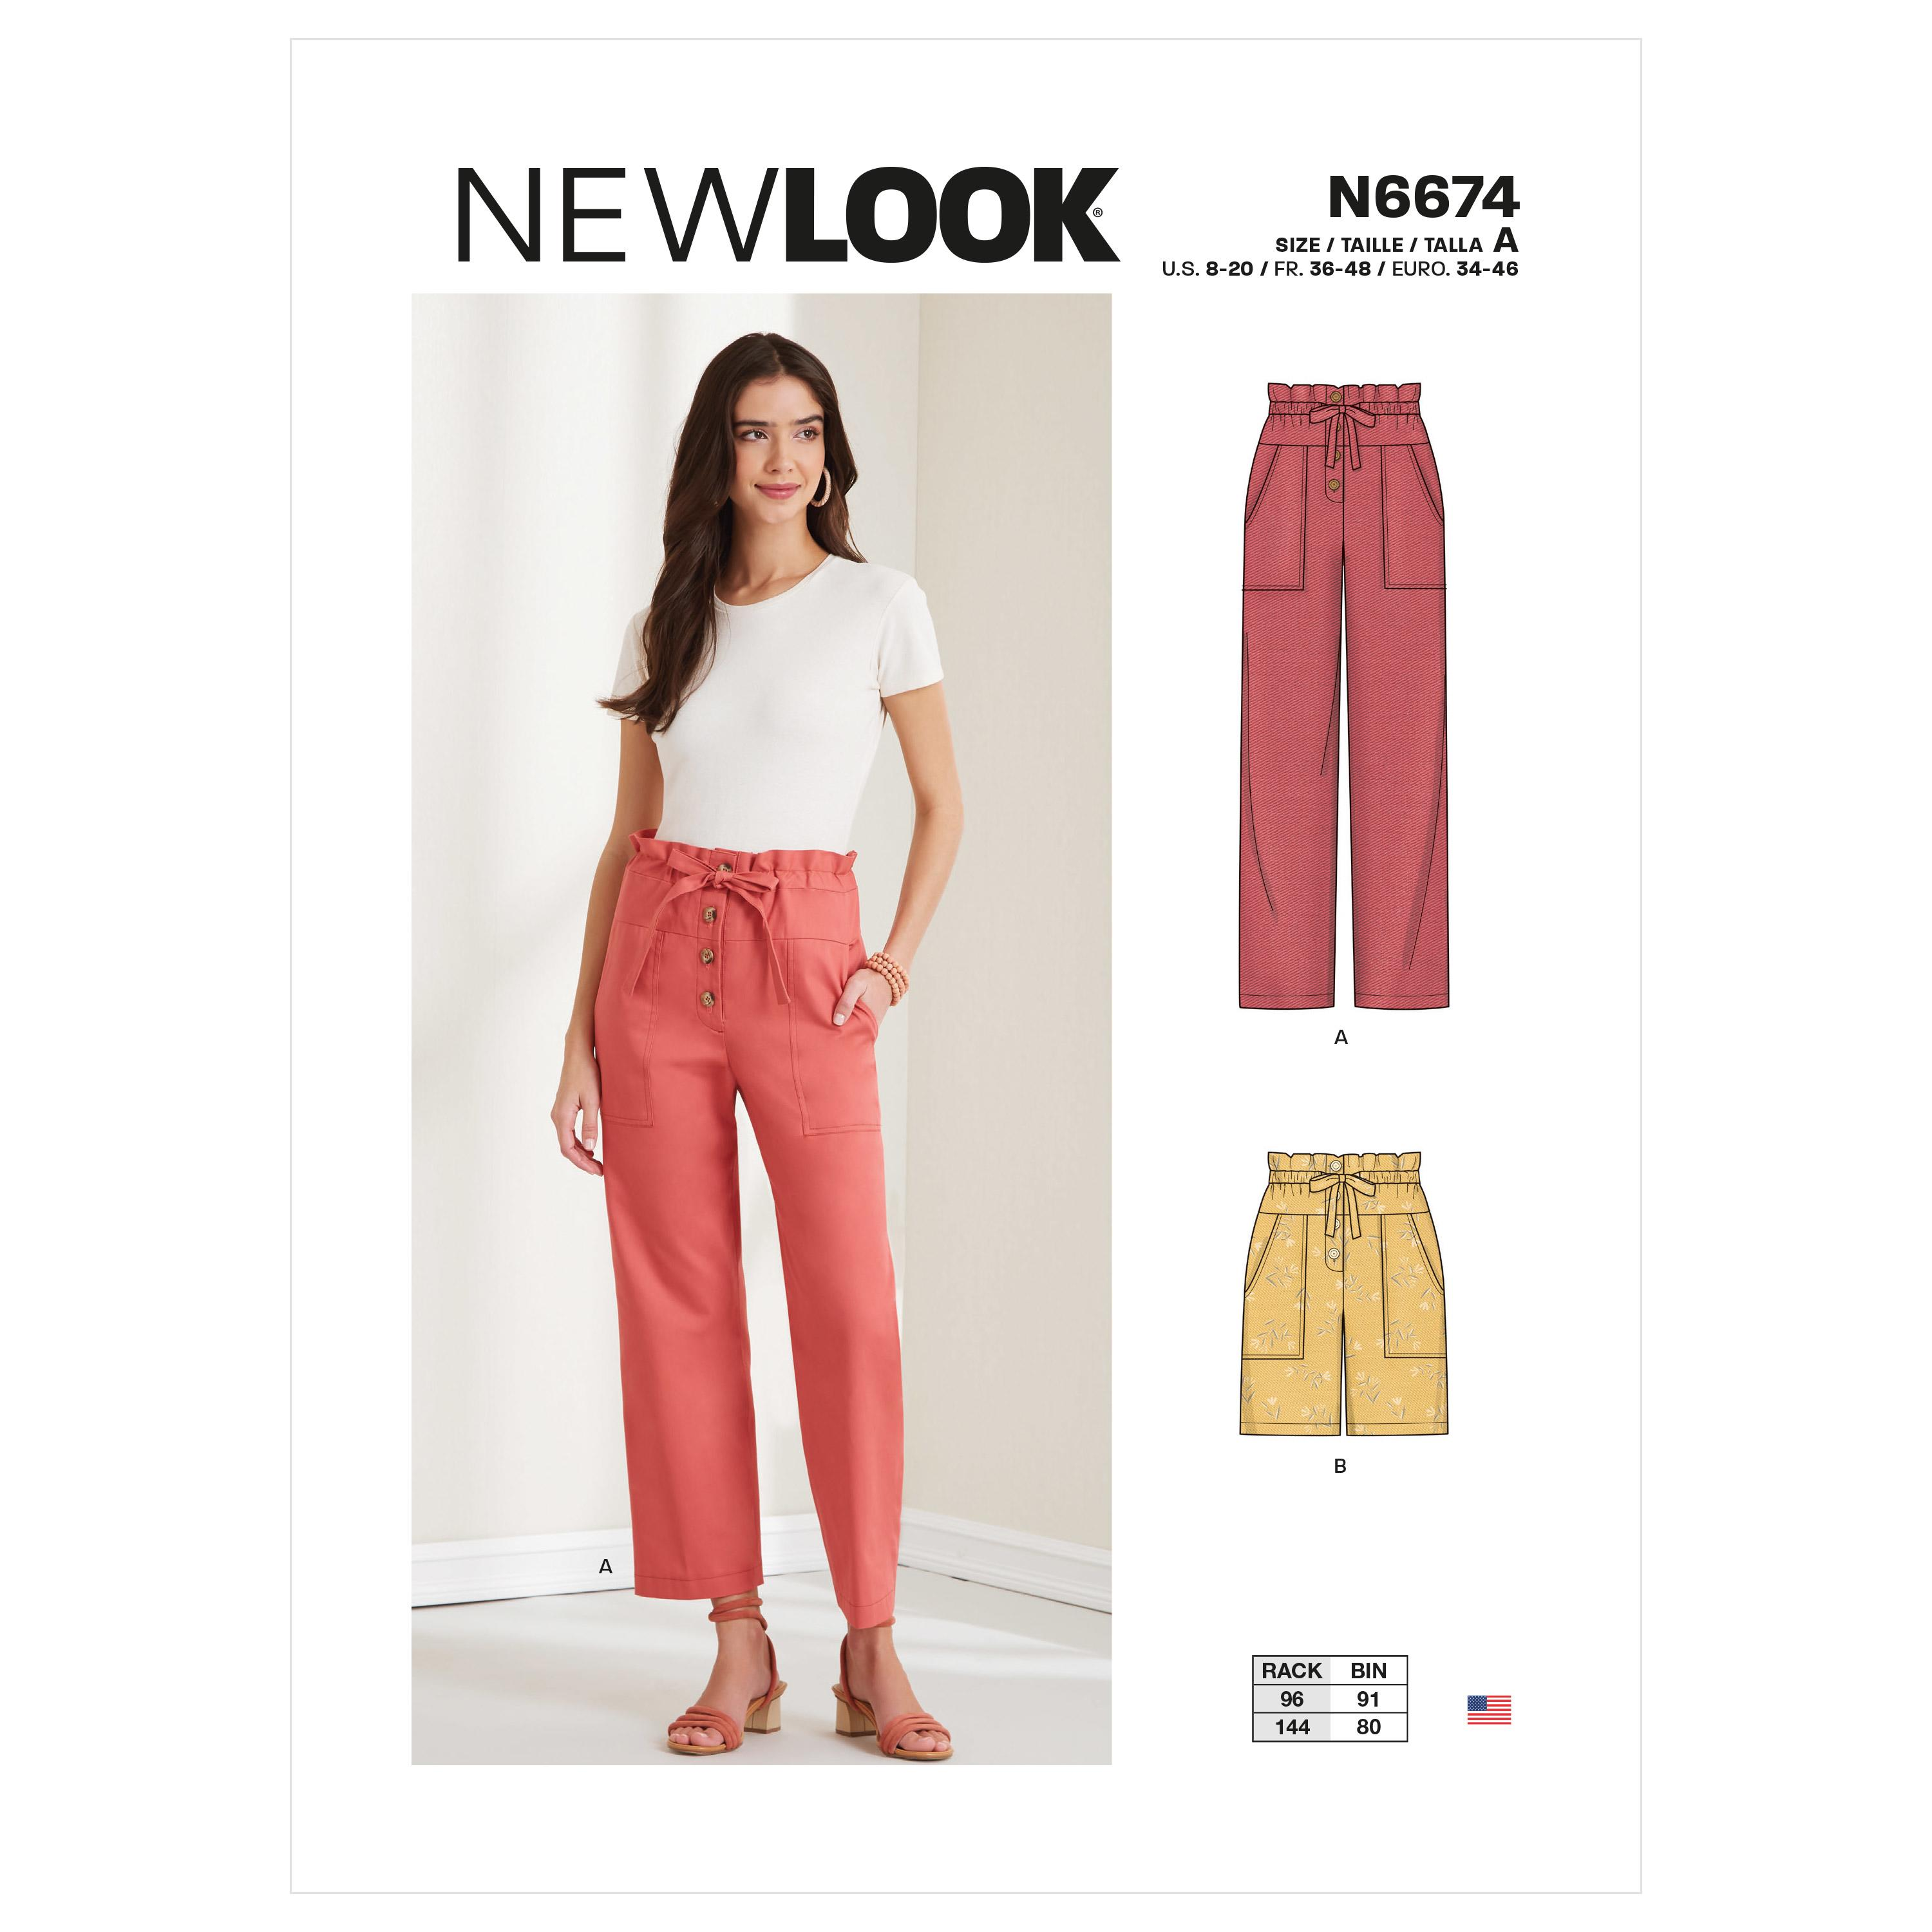 New Look Sewing Pattern N6674 Misses' Trousers & Shorts